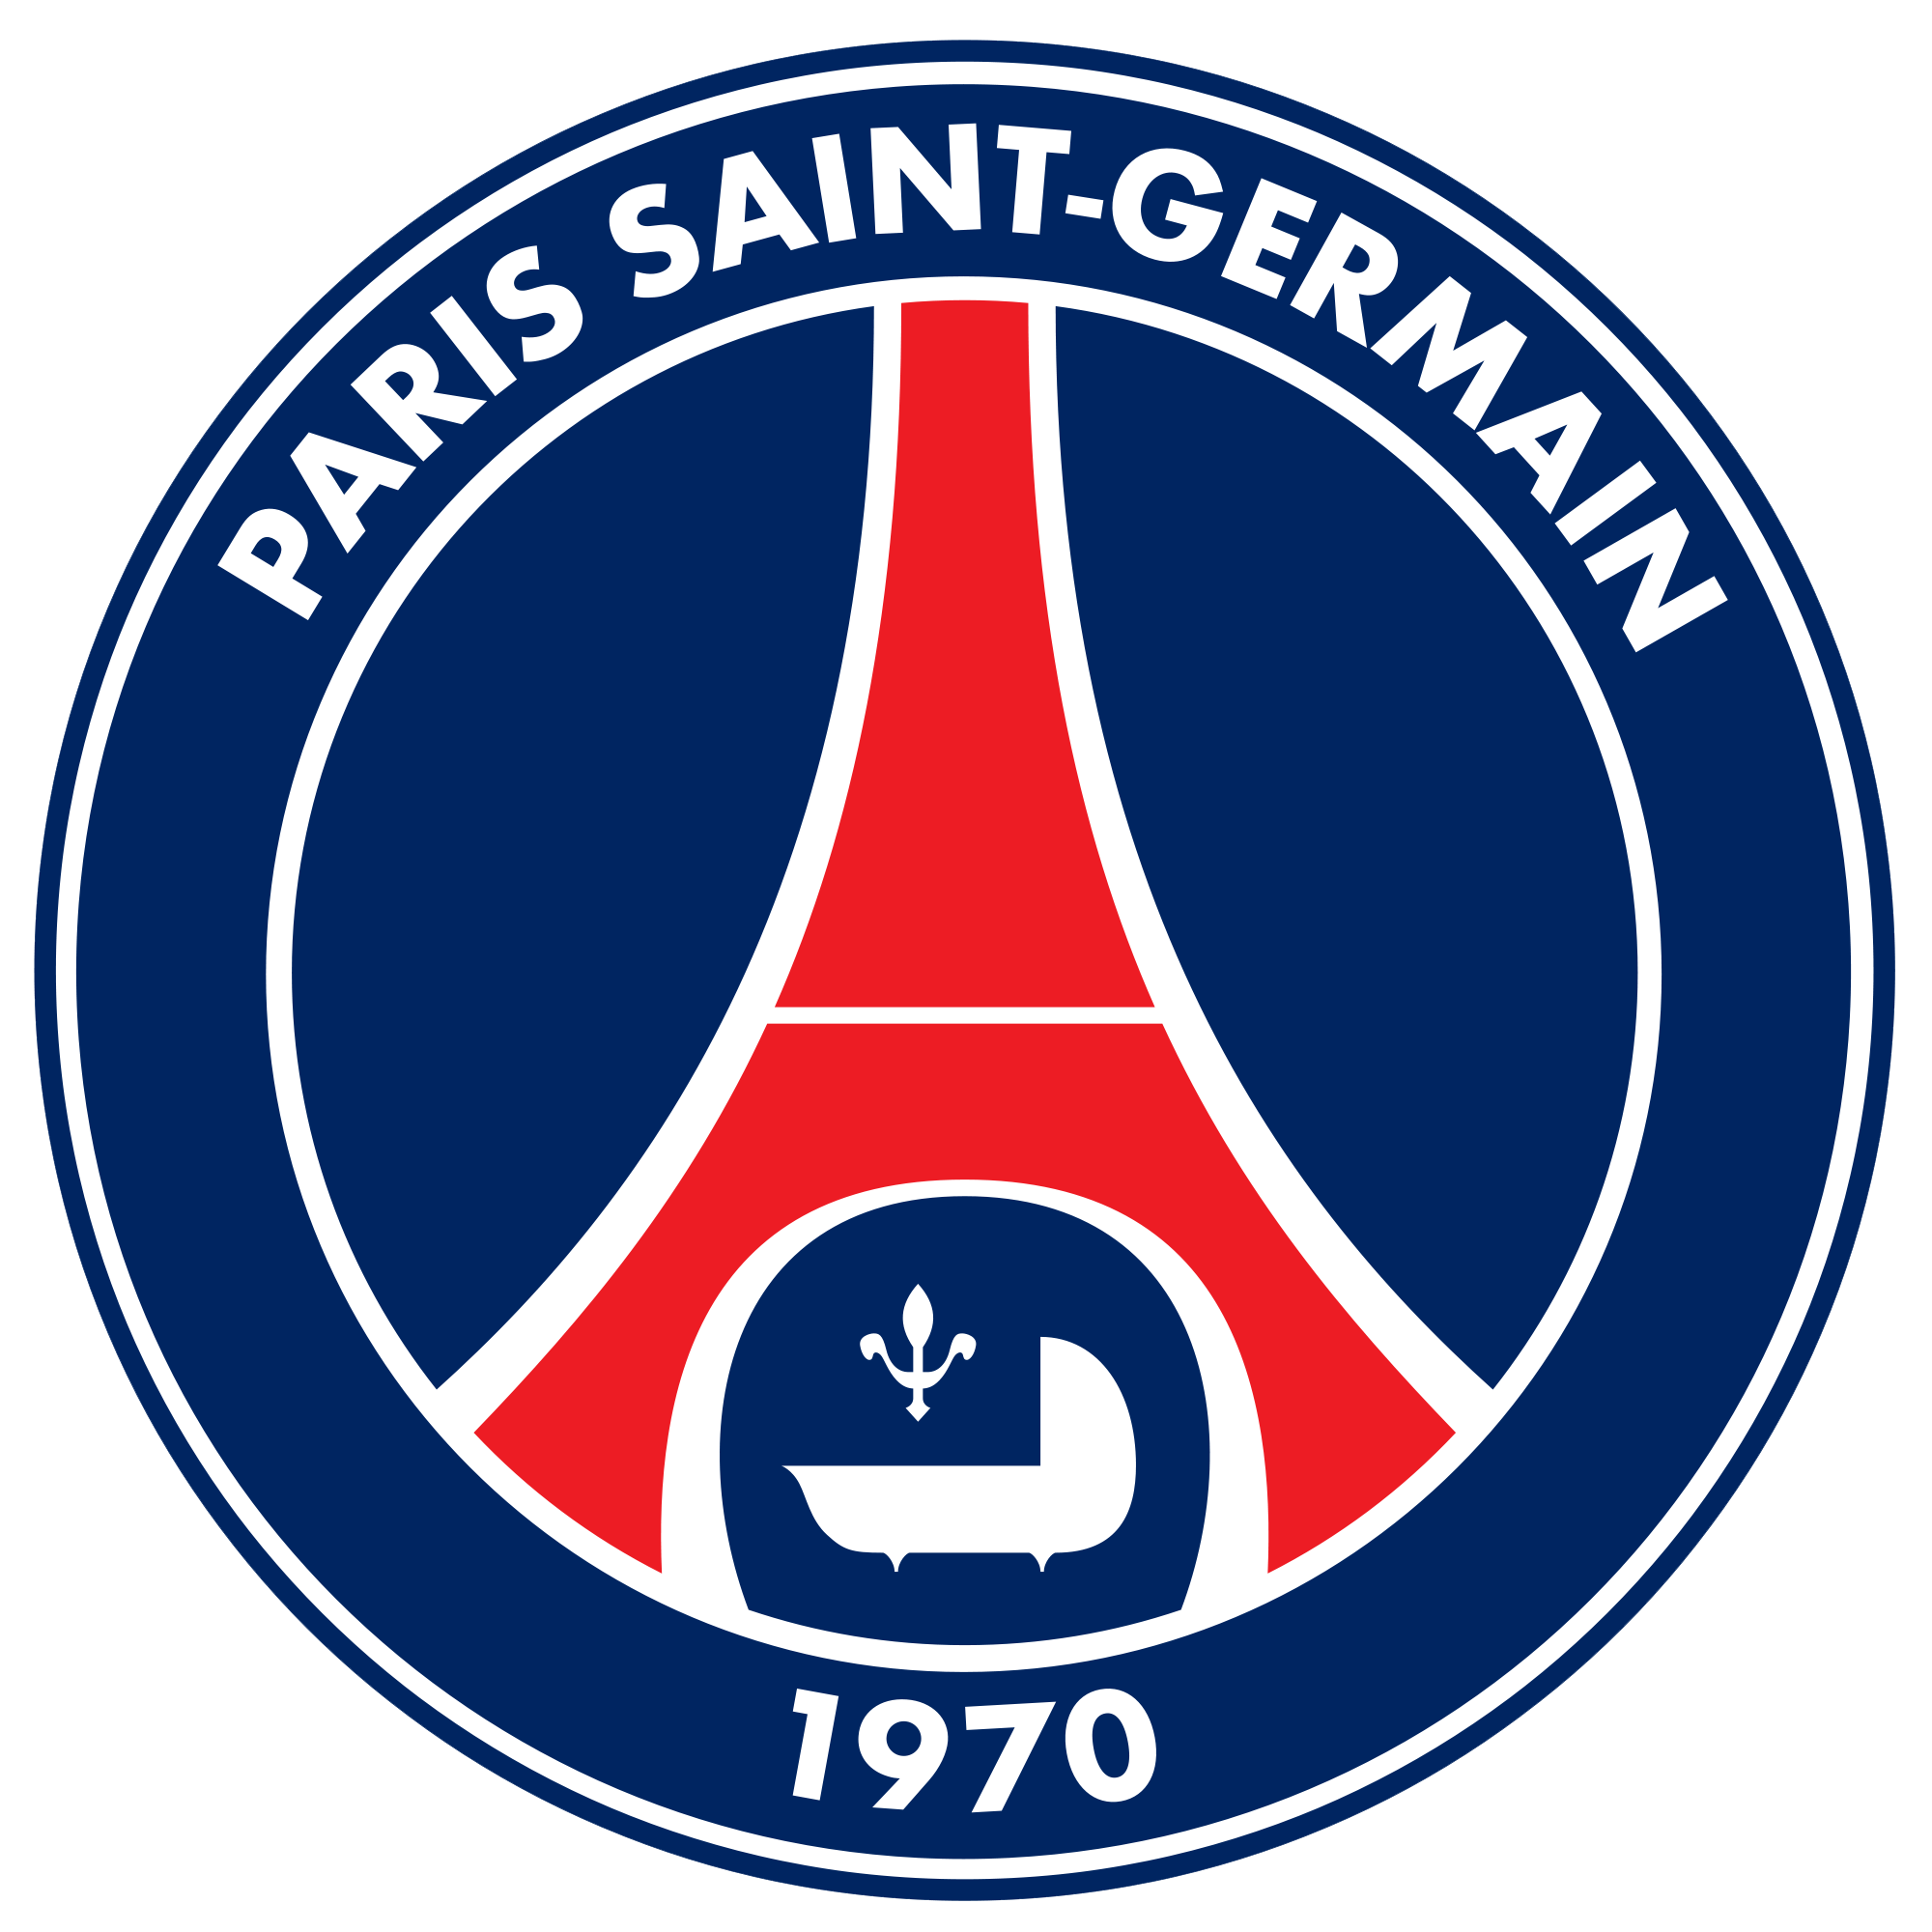 paris saint germain logo - photo #16